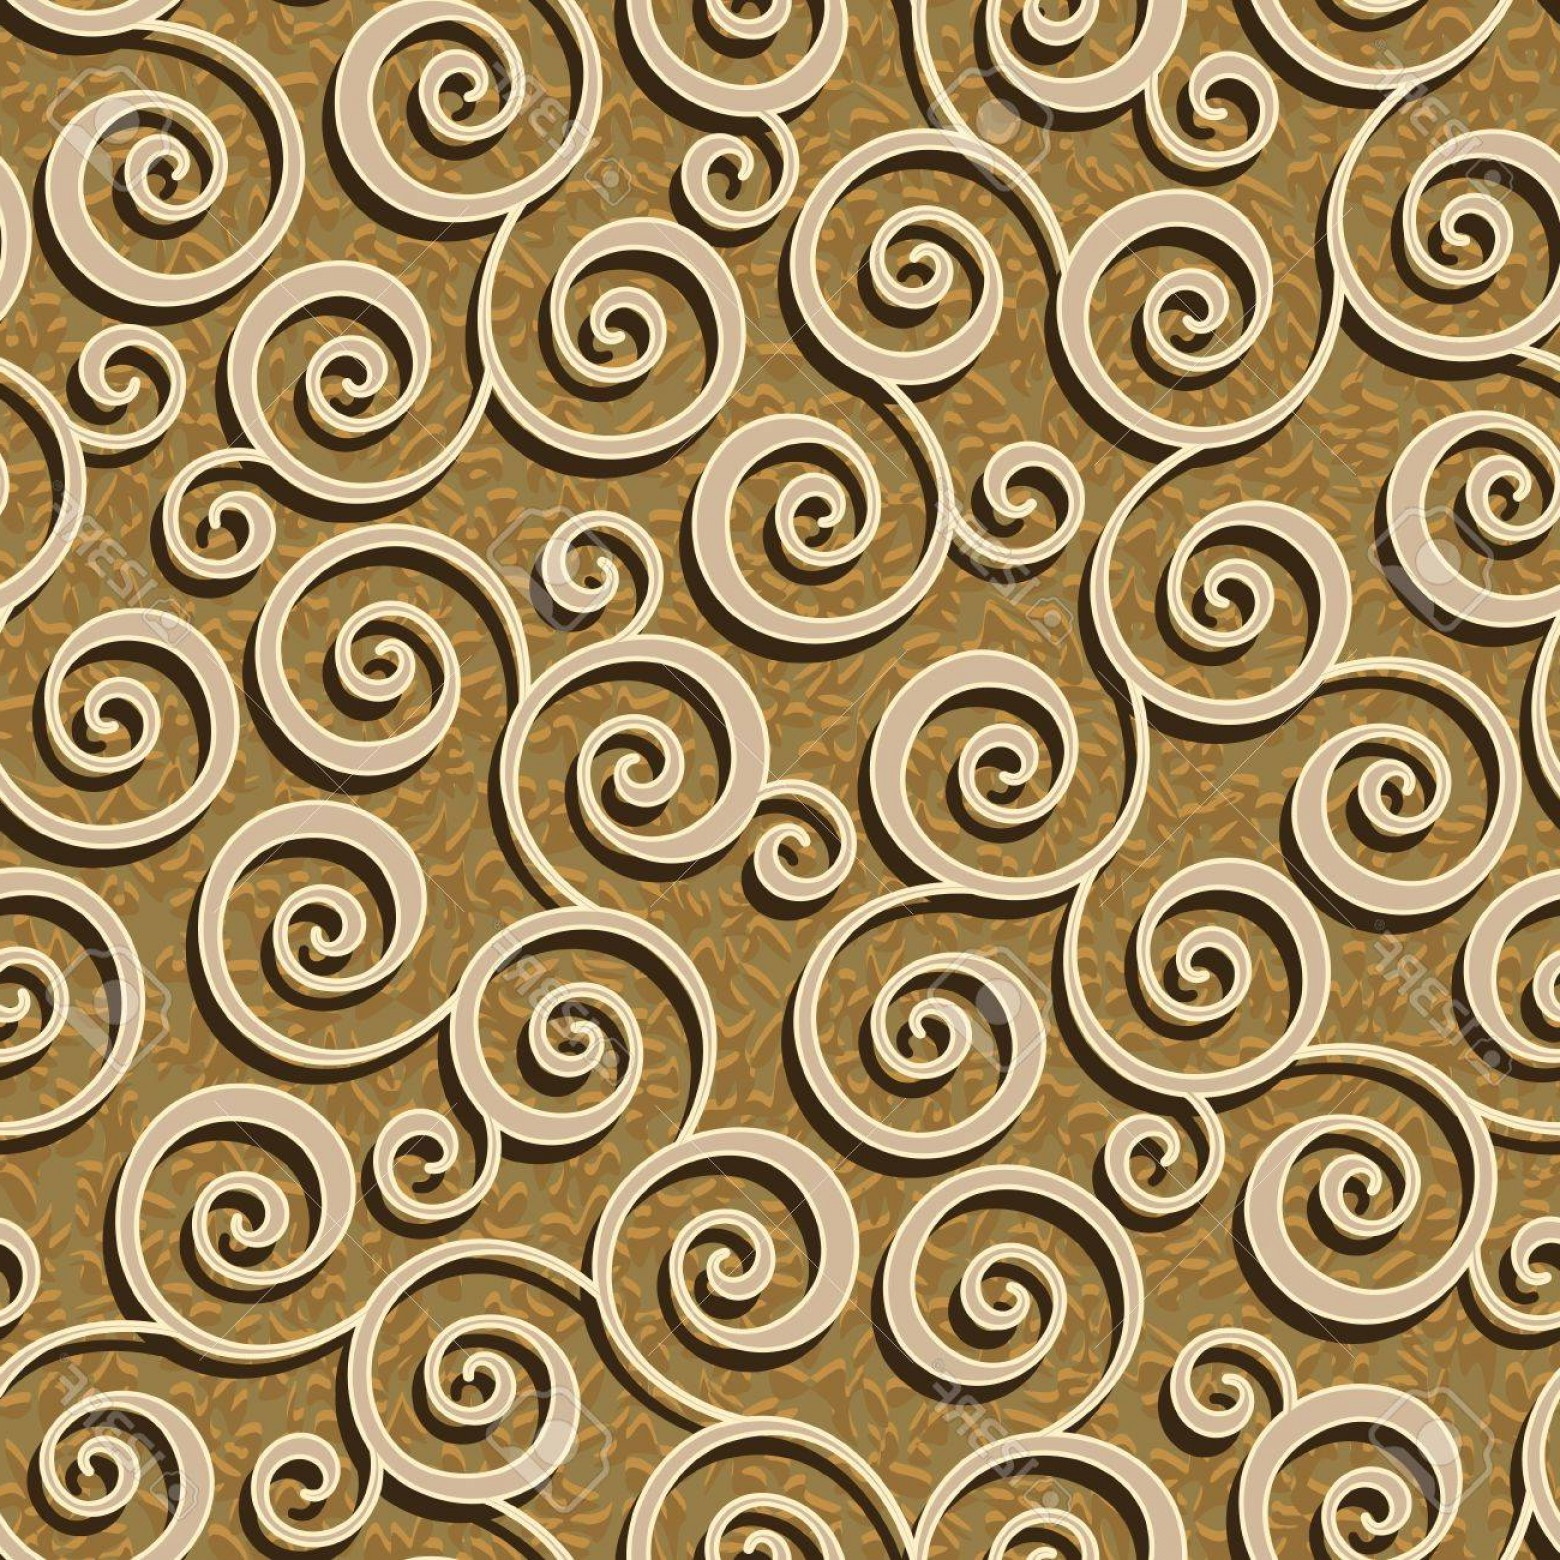 Vector Flourish Backgrounds: Photoabstract Flourish Floral Swirl Seamless Background Pattern